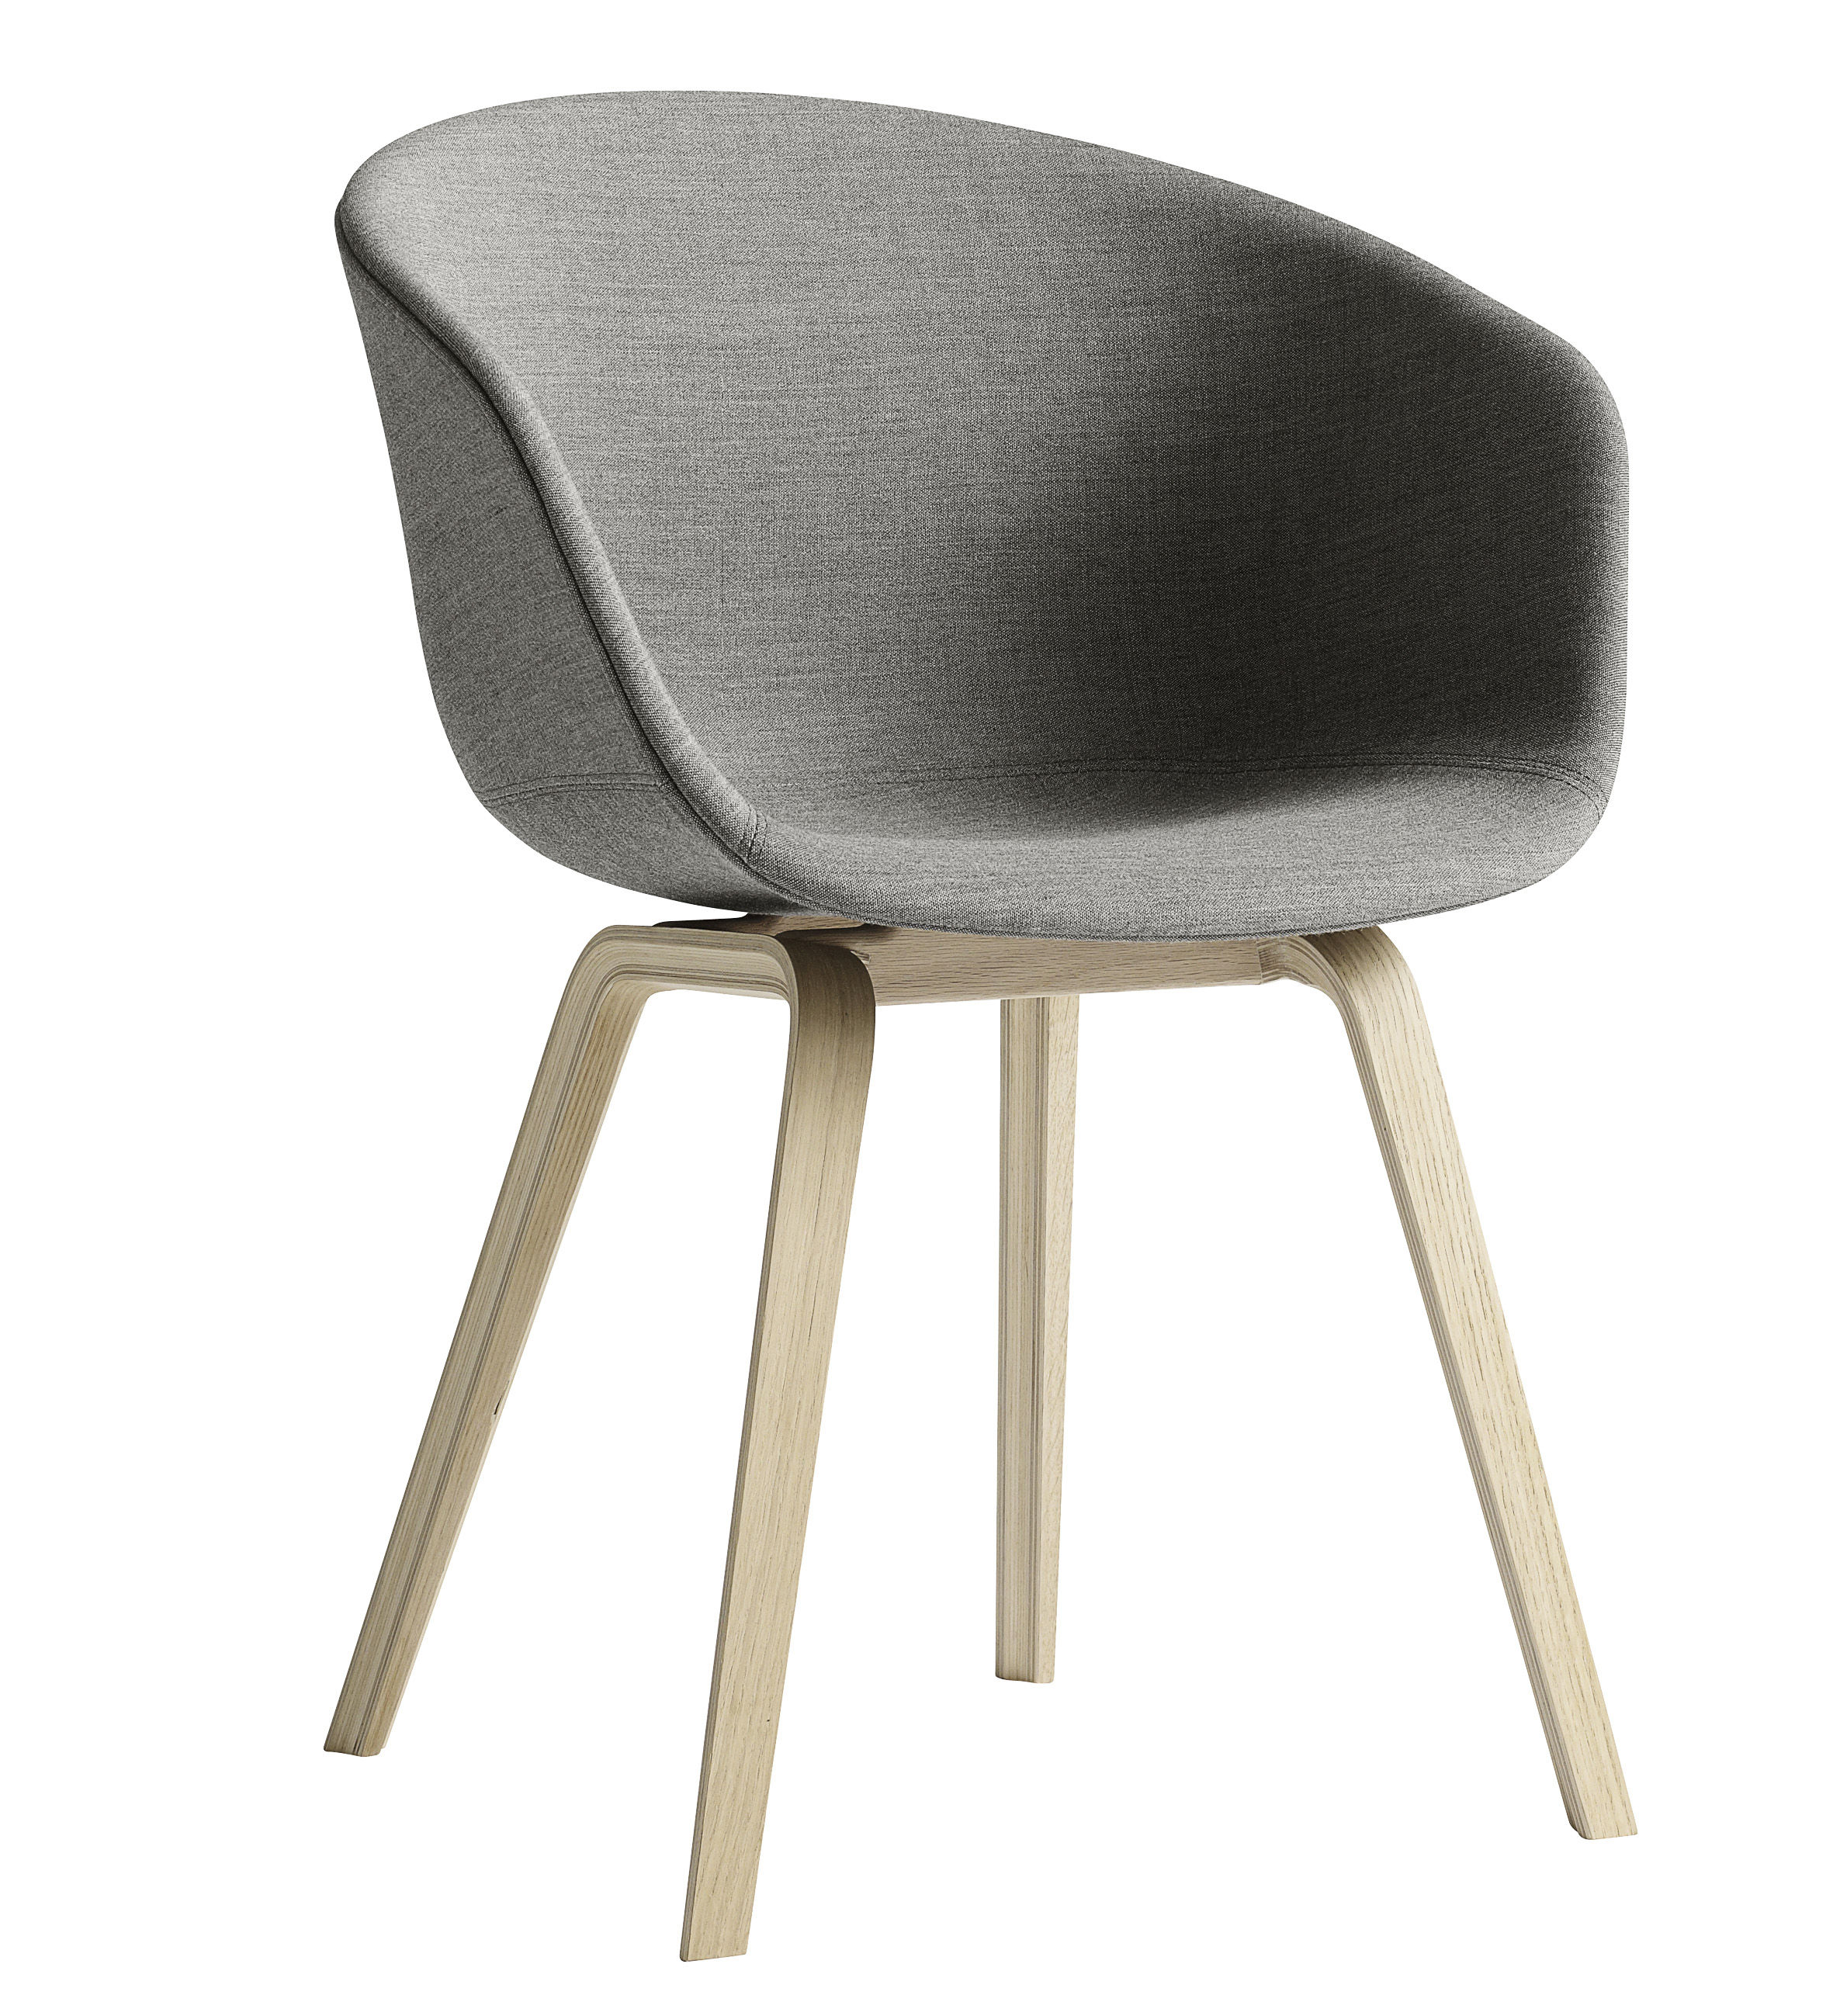 Furniture - Chairs - About a chair Padded armchair - 4 legs /Full fabric by Hay - Medium grey / Natural oak feet - Fabric, Oak, Polypropylene